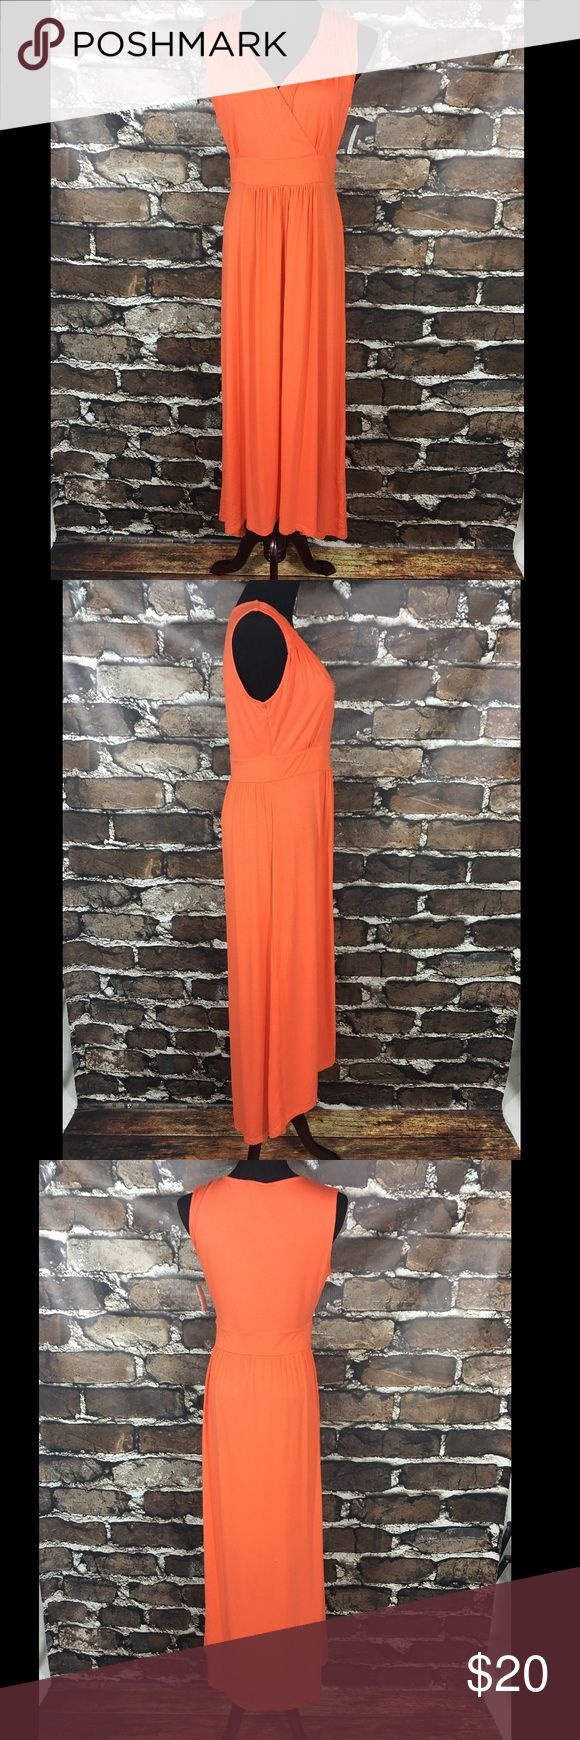 "NWT Tribal Hi-Lo Maxi Dress New with tags. Women's dress by Tribal. Orange. Maxi dress. Sleeveless. Slight hi-lo. Stretch. Women's size medium.  Measurement done without stretch: 38"" bust, 49.5"" length (front), 56"" length (back).  95% rayon, 5% spandex.  No rips, tears, stains, or flaws. From a smoke free home.  B020 Tribal Dresses Maxi"